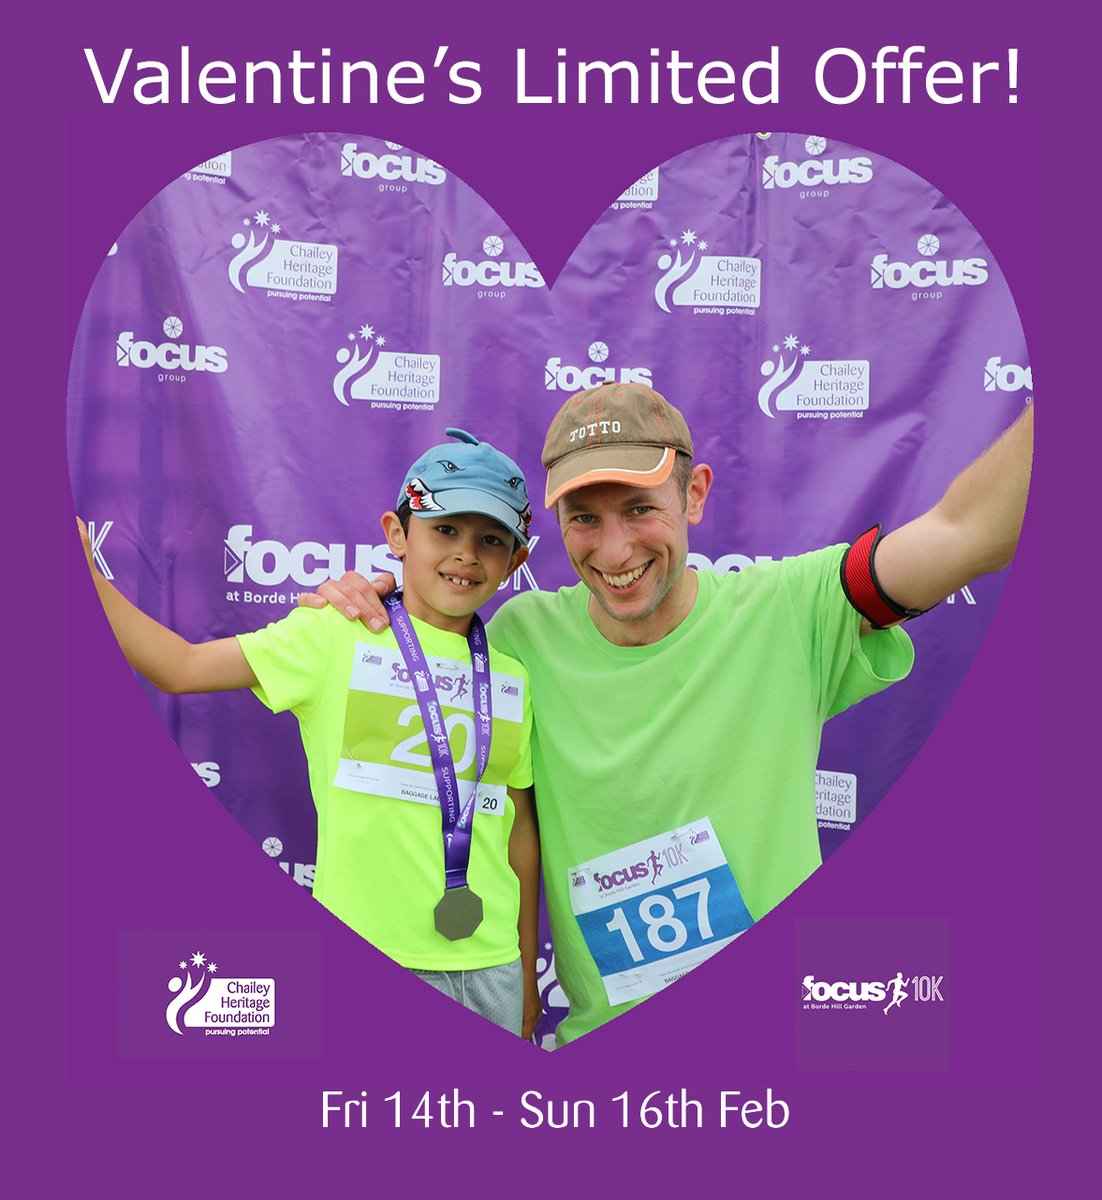 OFFER ENDS TODAY Using code: LOVE2RUN to get 10% off Early Bird tickets! http://www.focus10k.com  @jel_fitness @focusgrp_uk  #Focus10K #BordeHill #Running #Charity #ChaileyHeritageFoundation #Sussex #Brighton #Runningmotivation #NotForProfit #Disabilitypic.twitter.com/NfxmF5CWYf